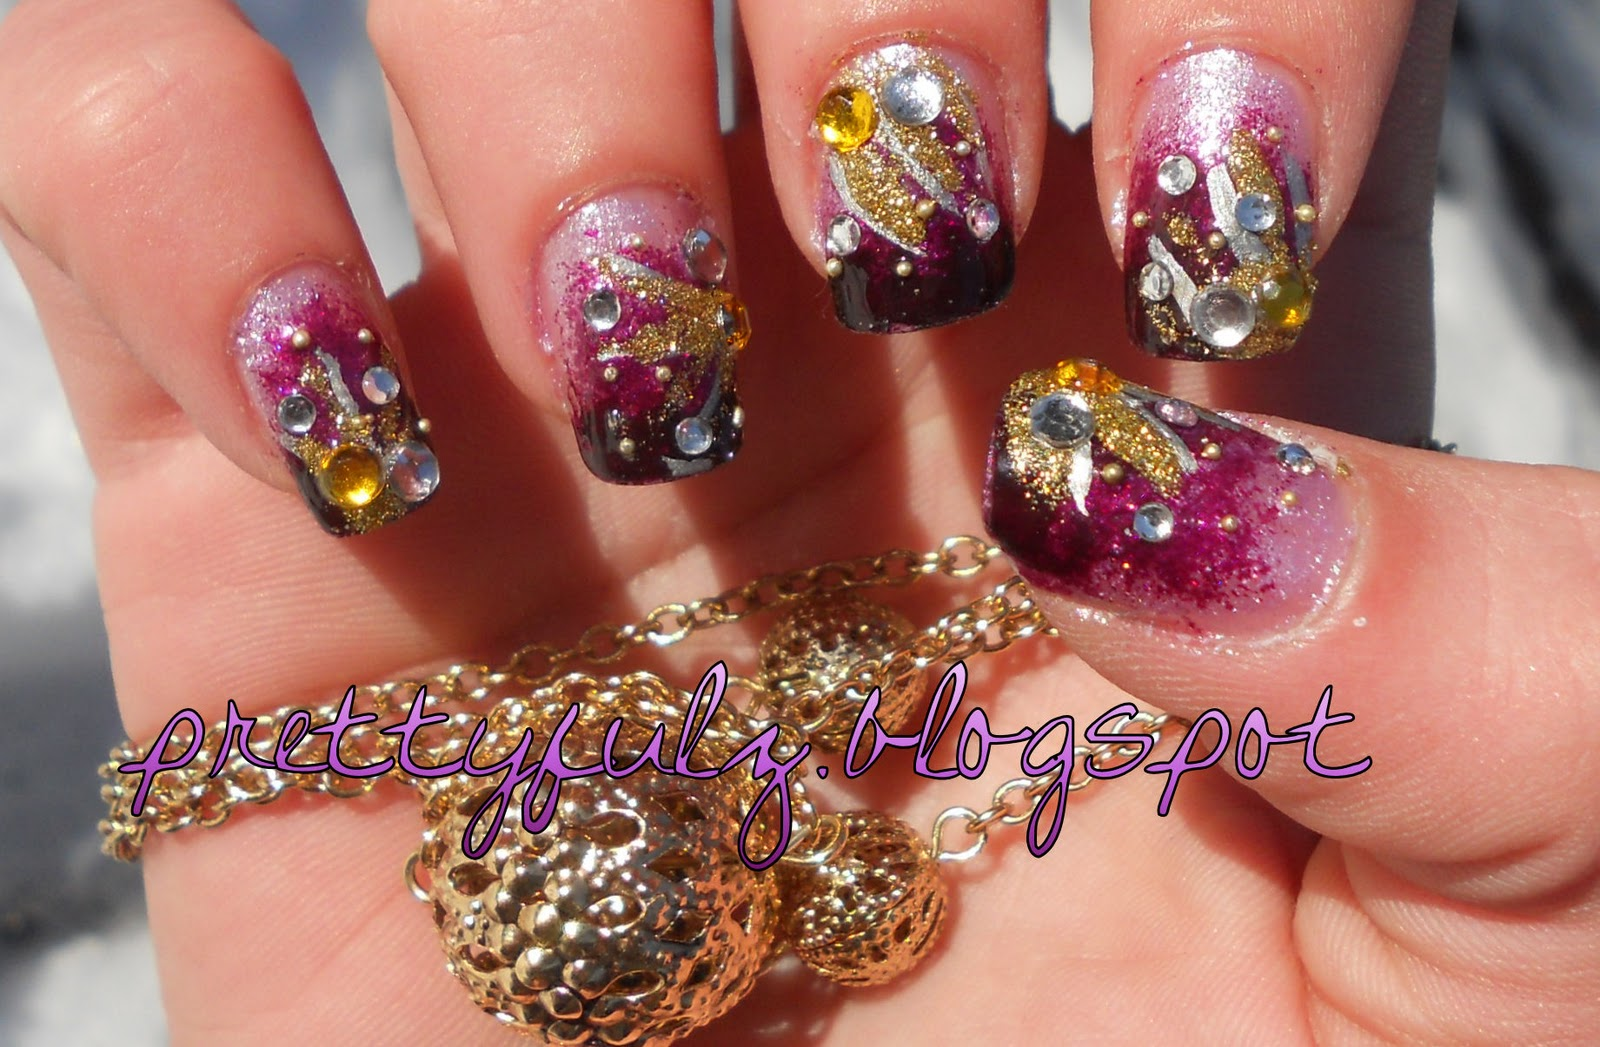 CUTE NAIL ART DESIGN  Purple Deco Nail Art